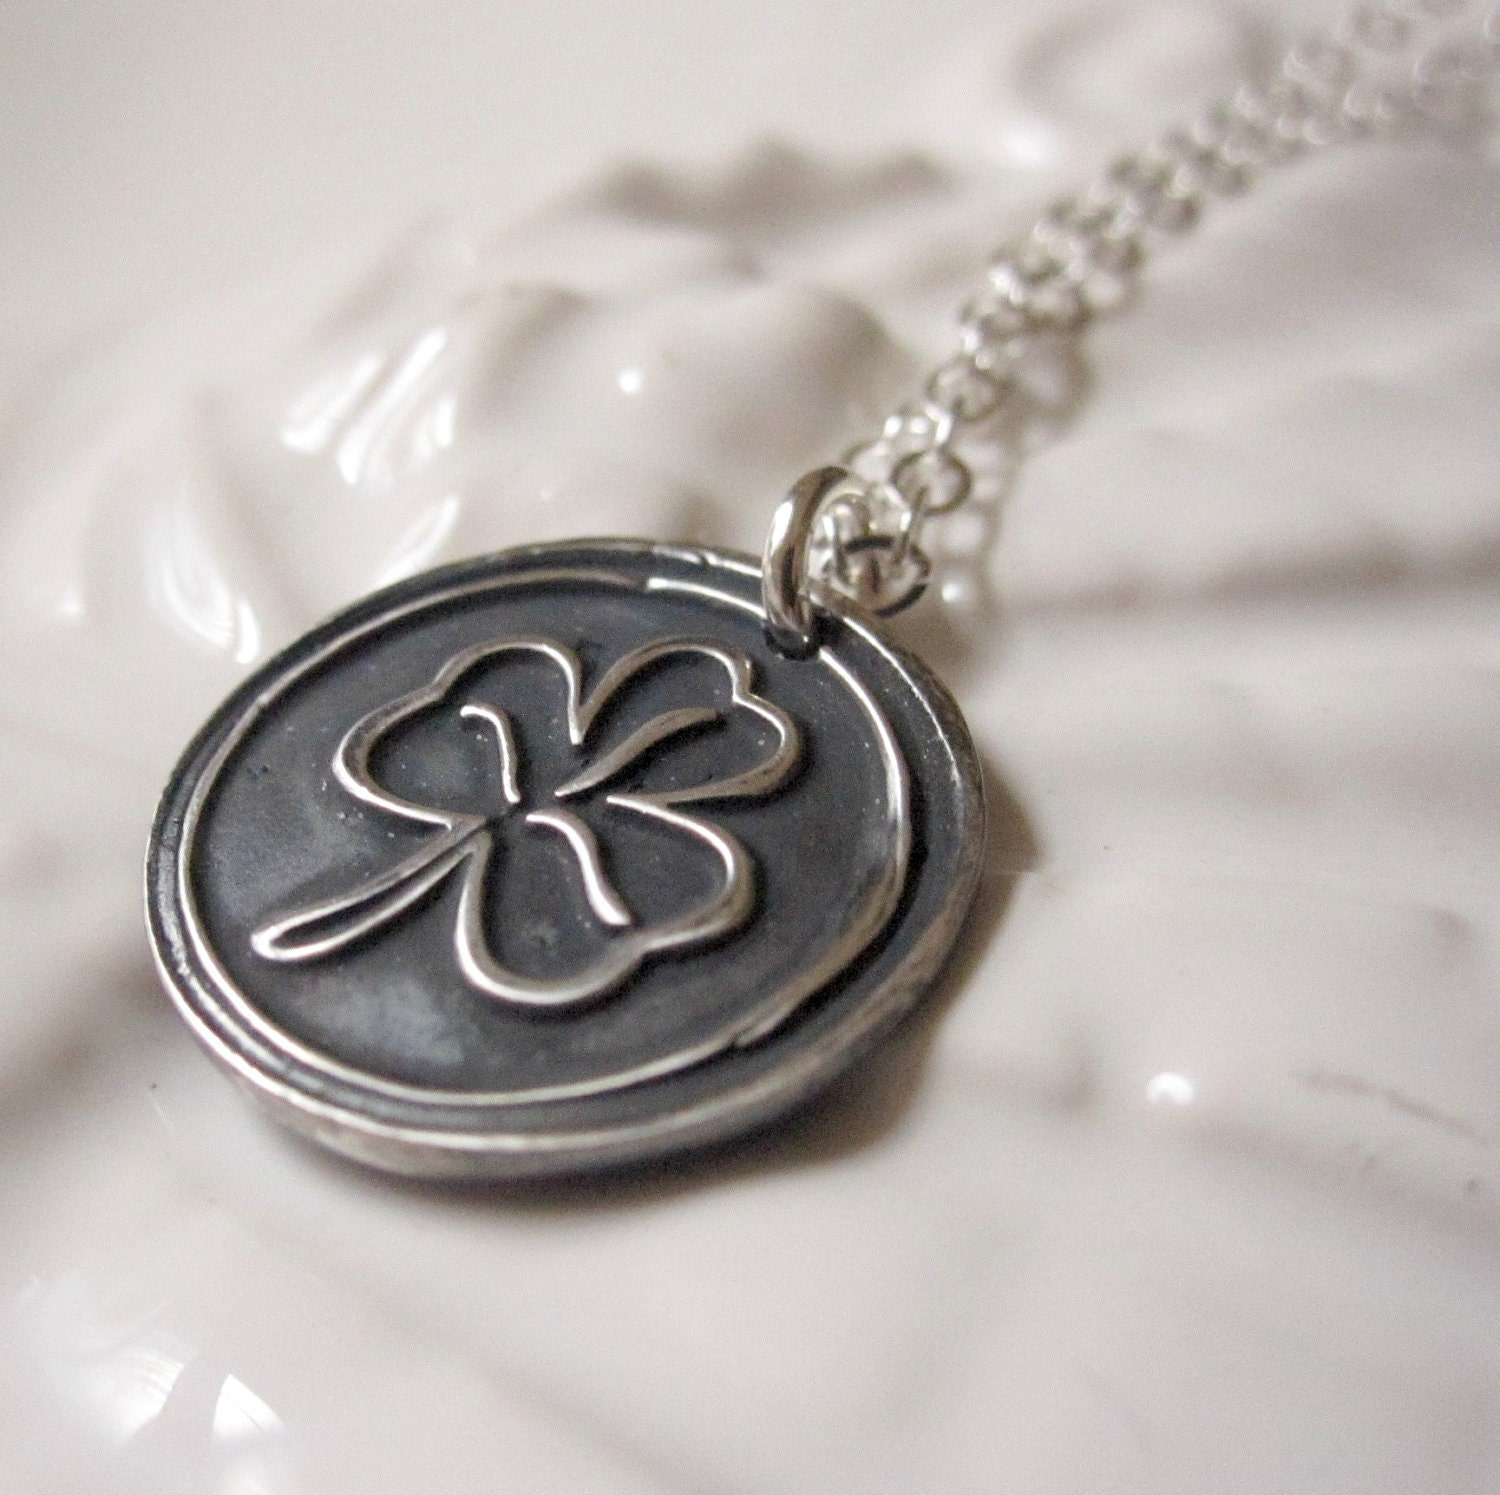 Seal Necklace on Wax Seal Pendant  Shamrock Necklace  Fine Silver  Pmc  Sterling Silver